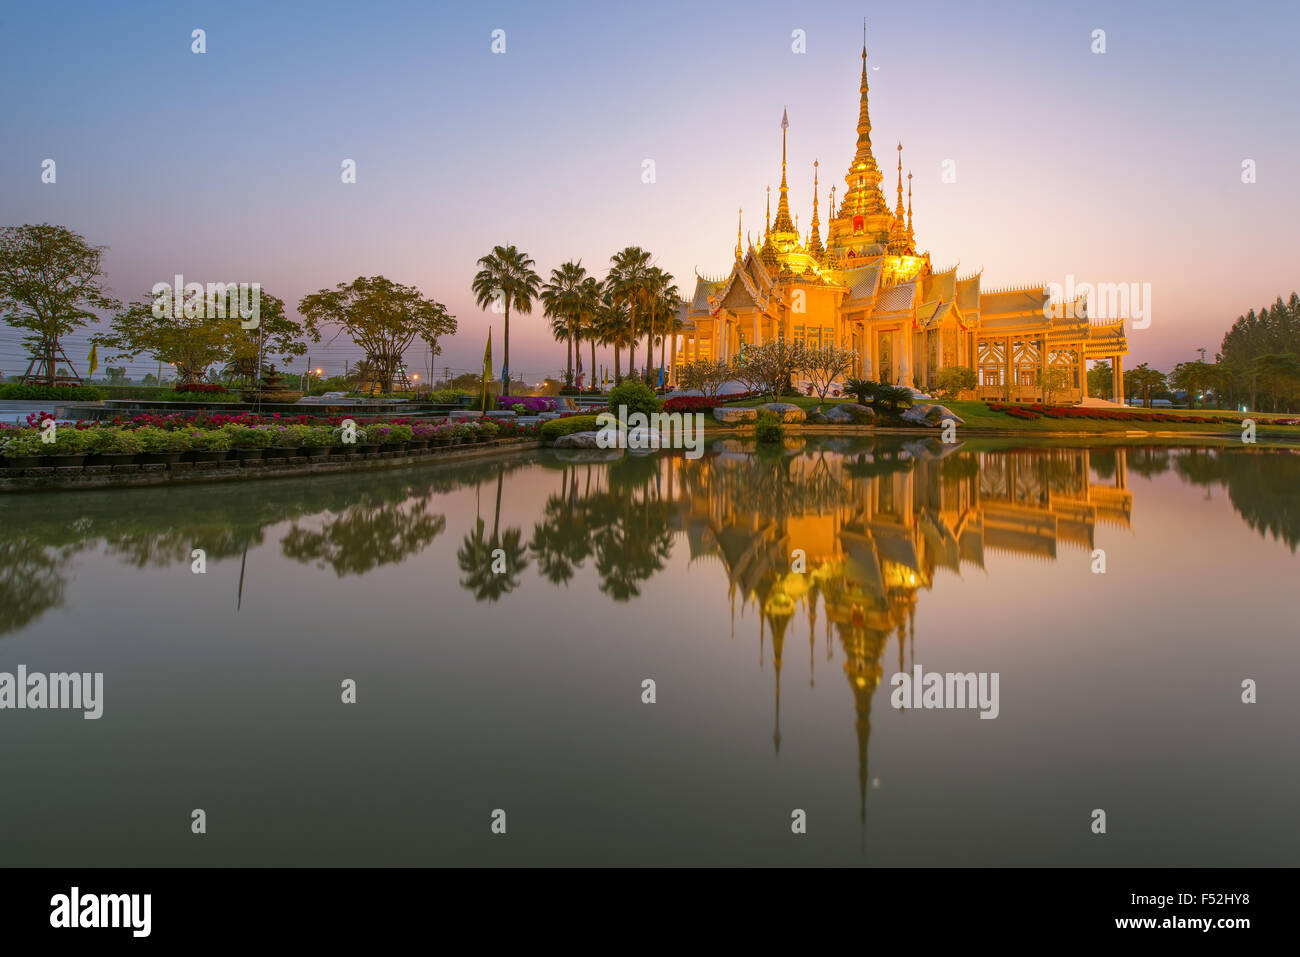 Beautiful temple at twilight time in Thailand - Stock Image